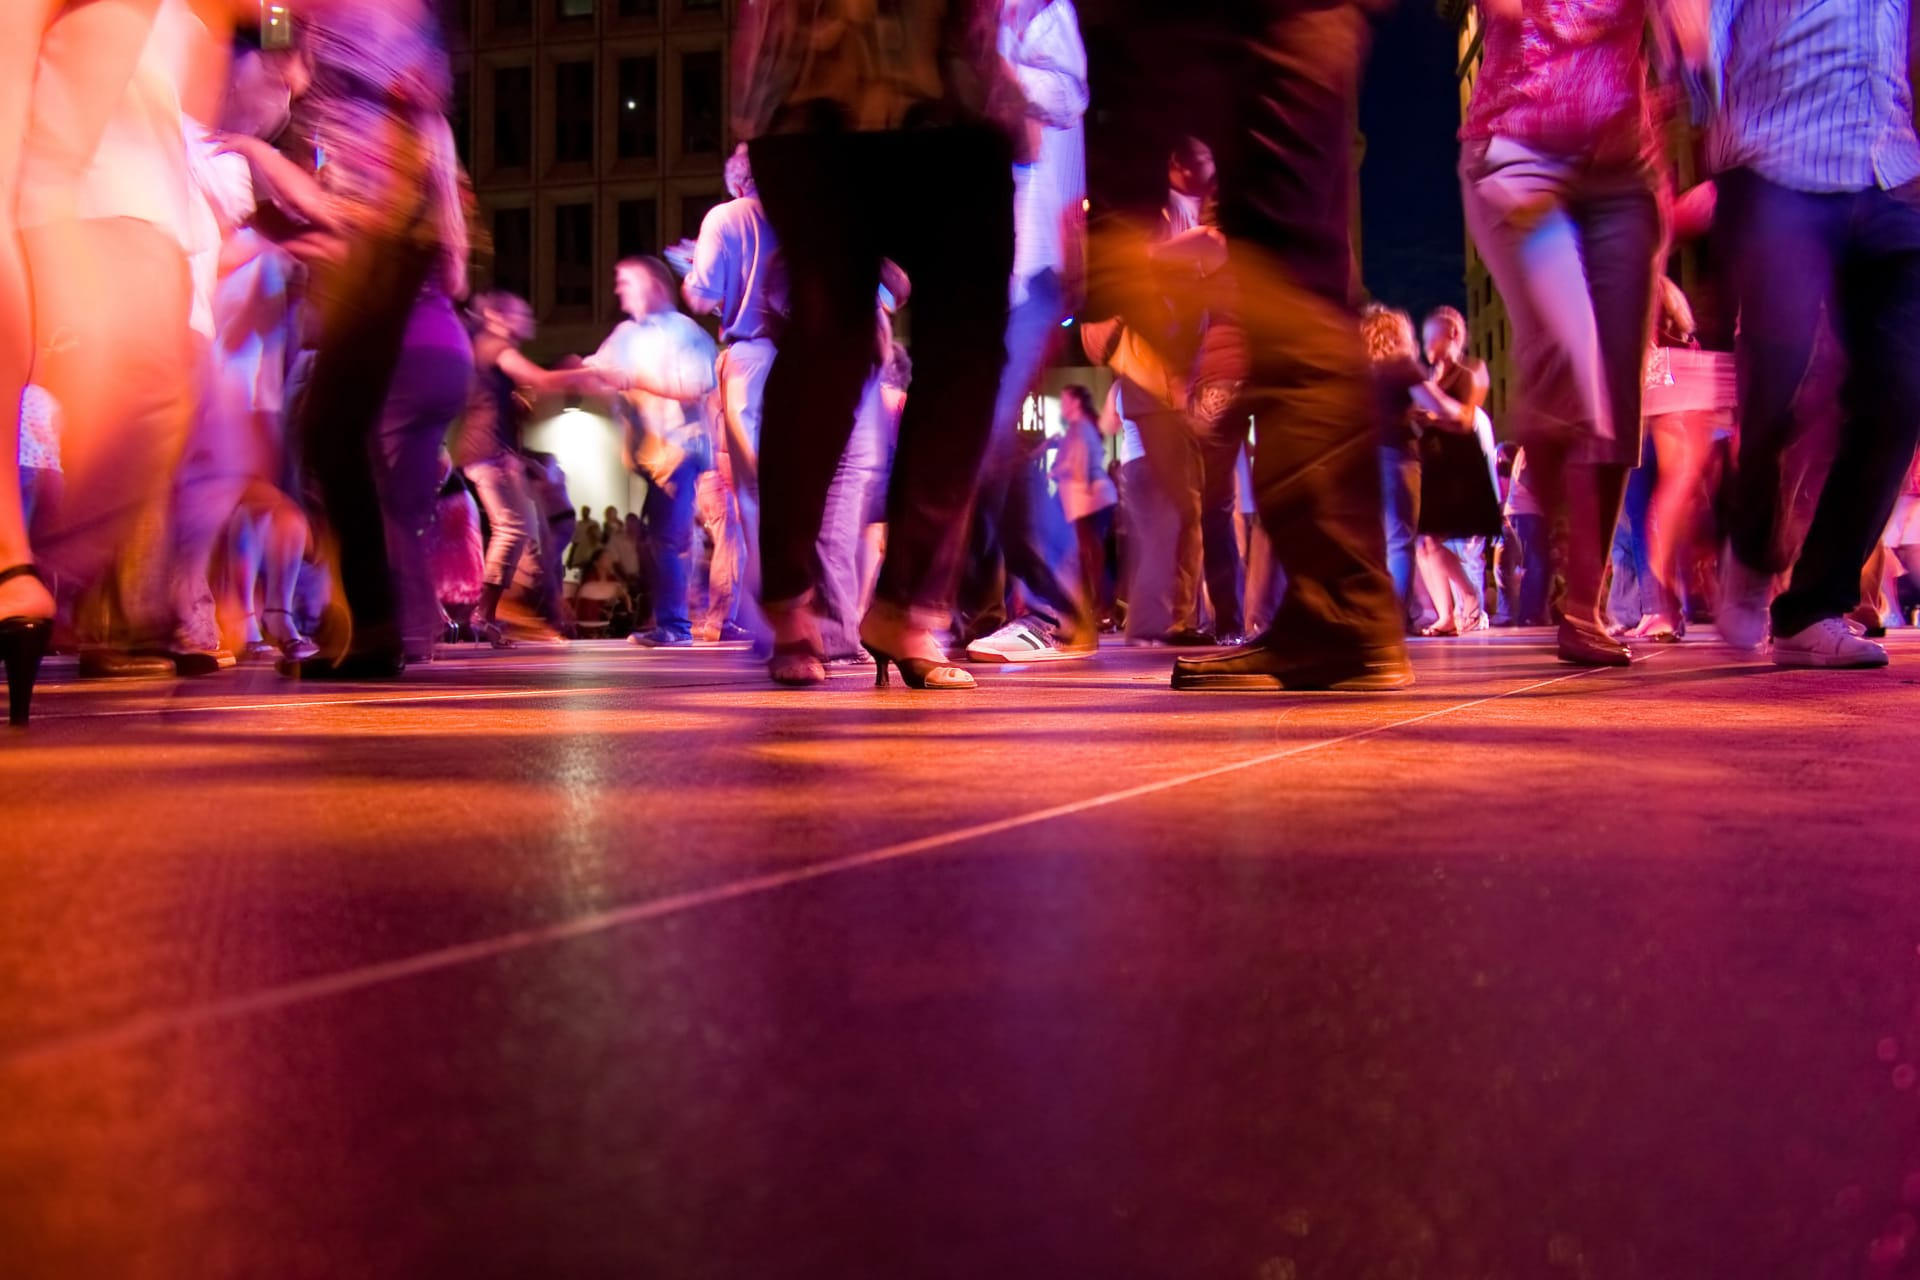 Medellín - Get On Your Dancing Shoes, Colombian Style